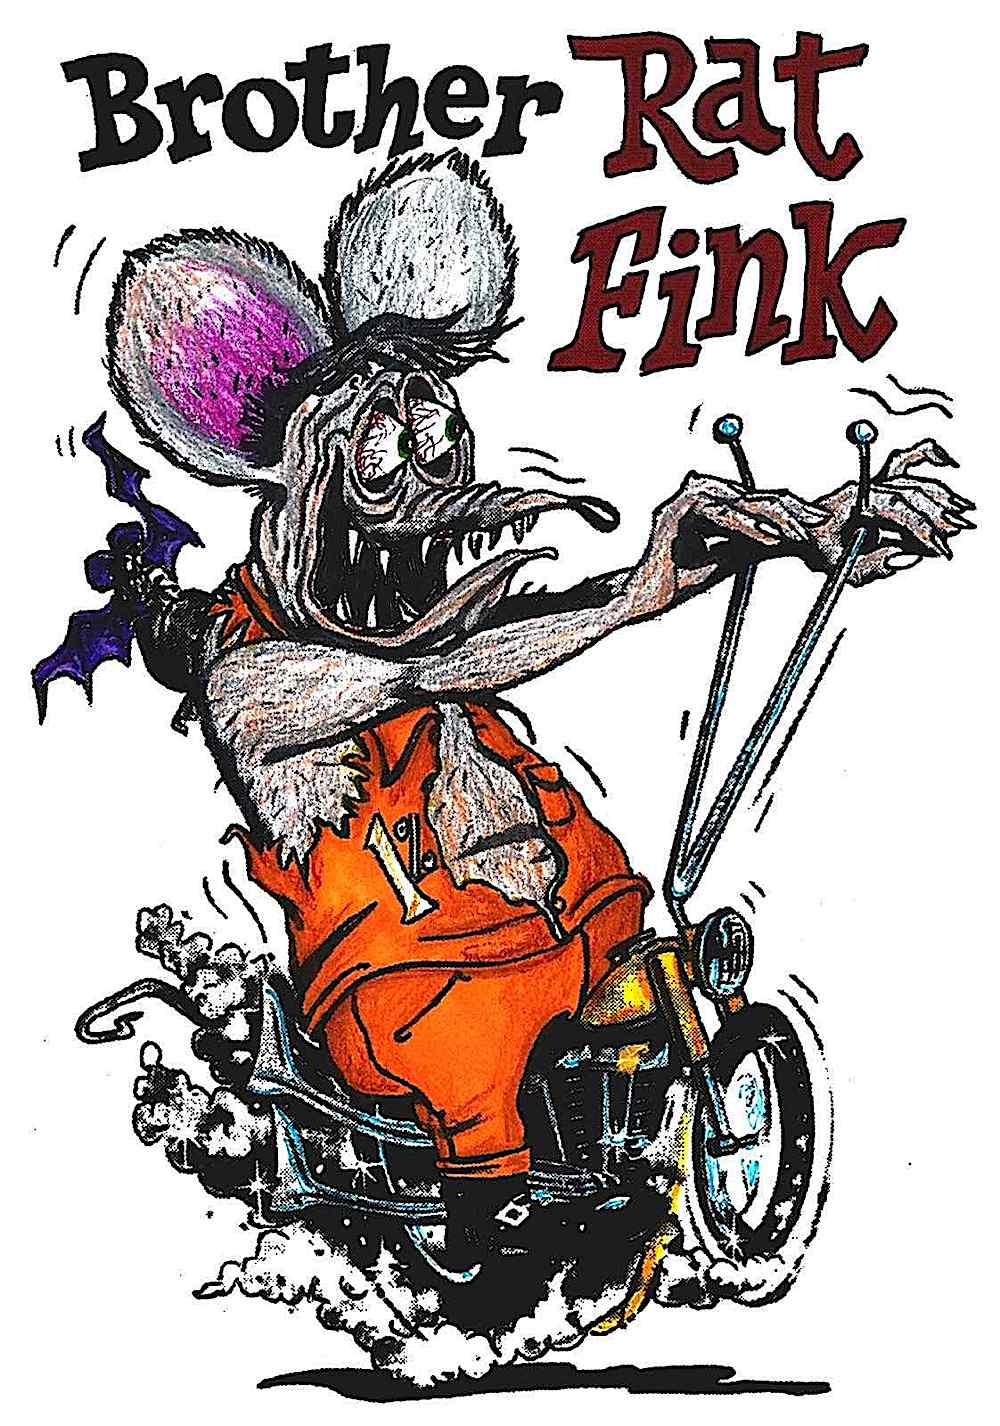 Ed Roth's Brother Rat Fink